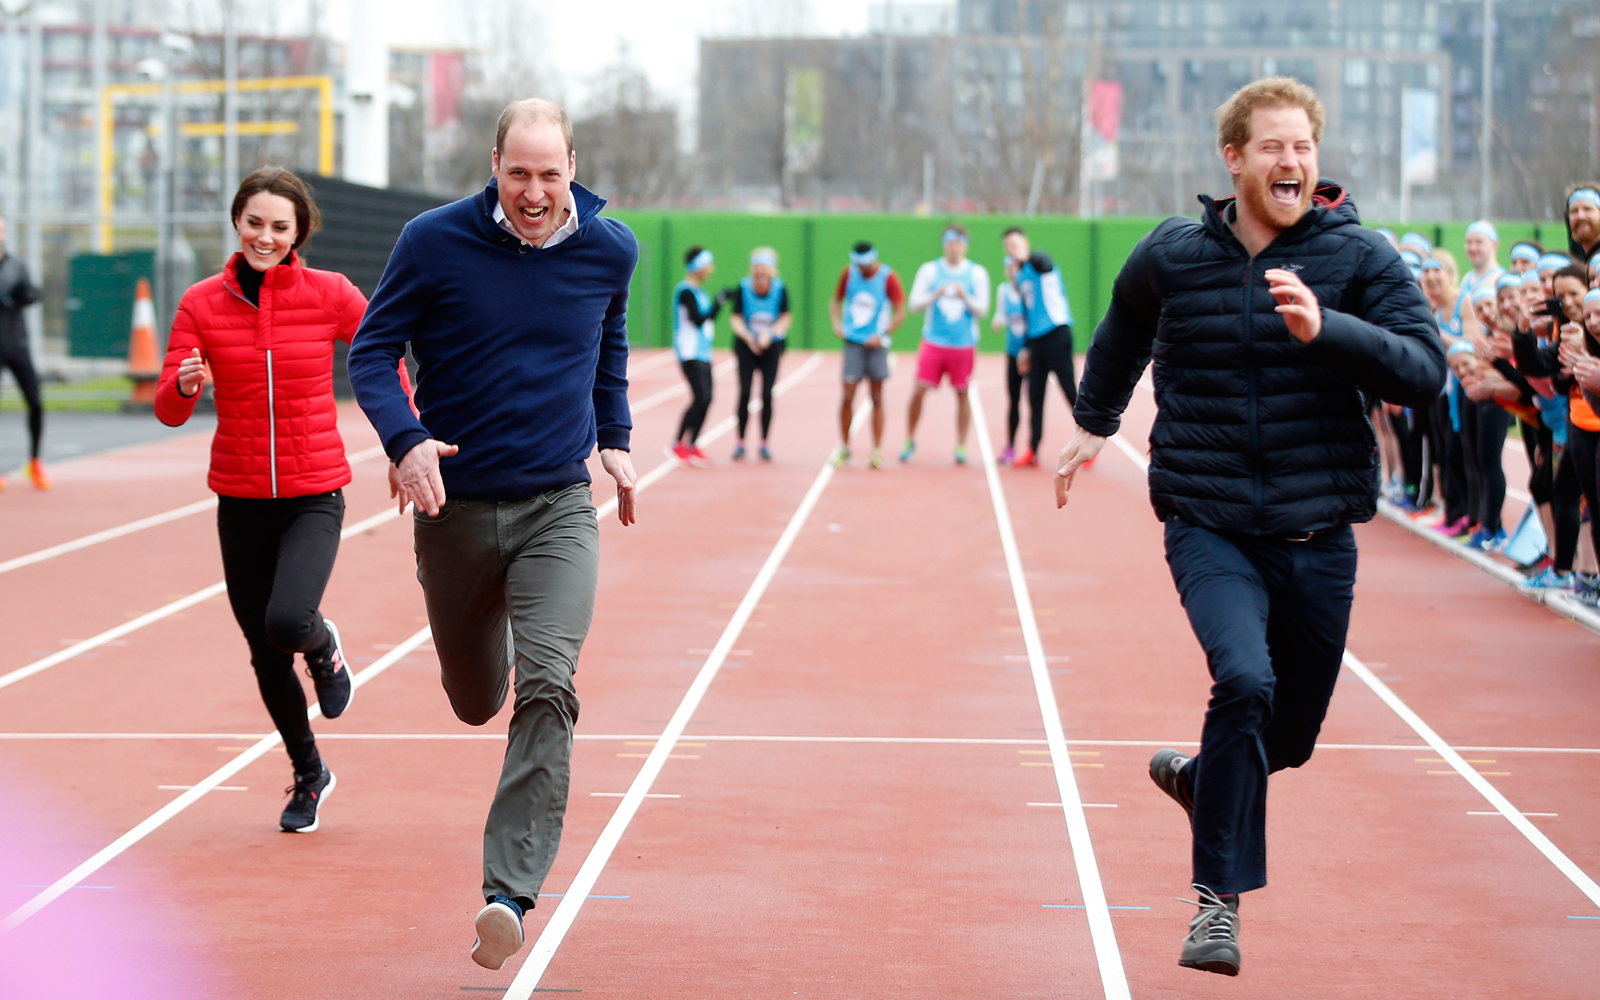 The Royals Do a Charity Race